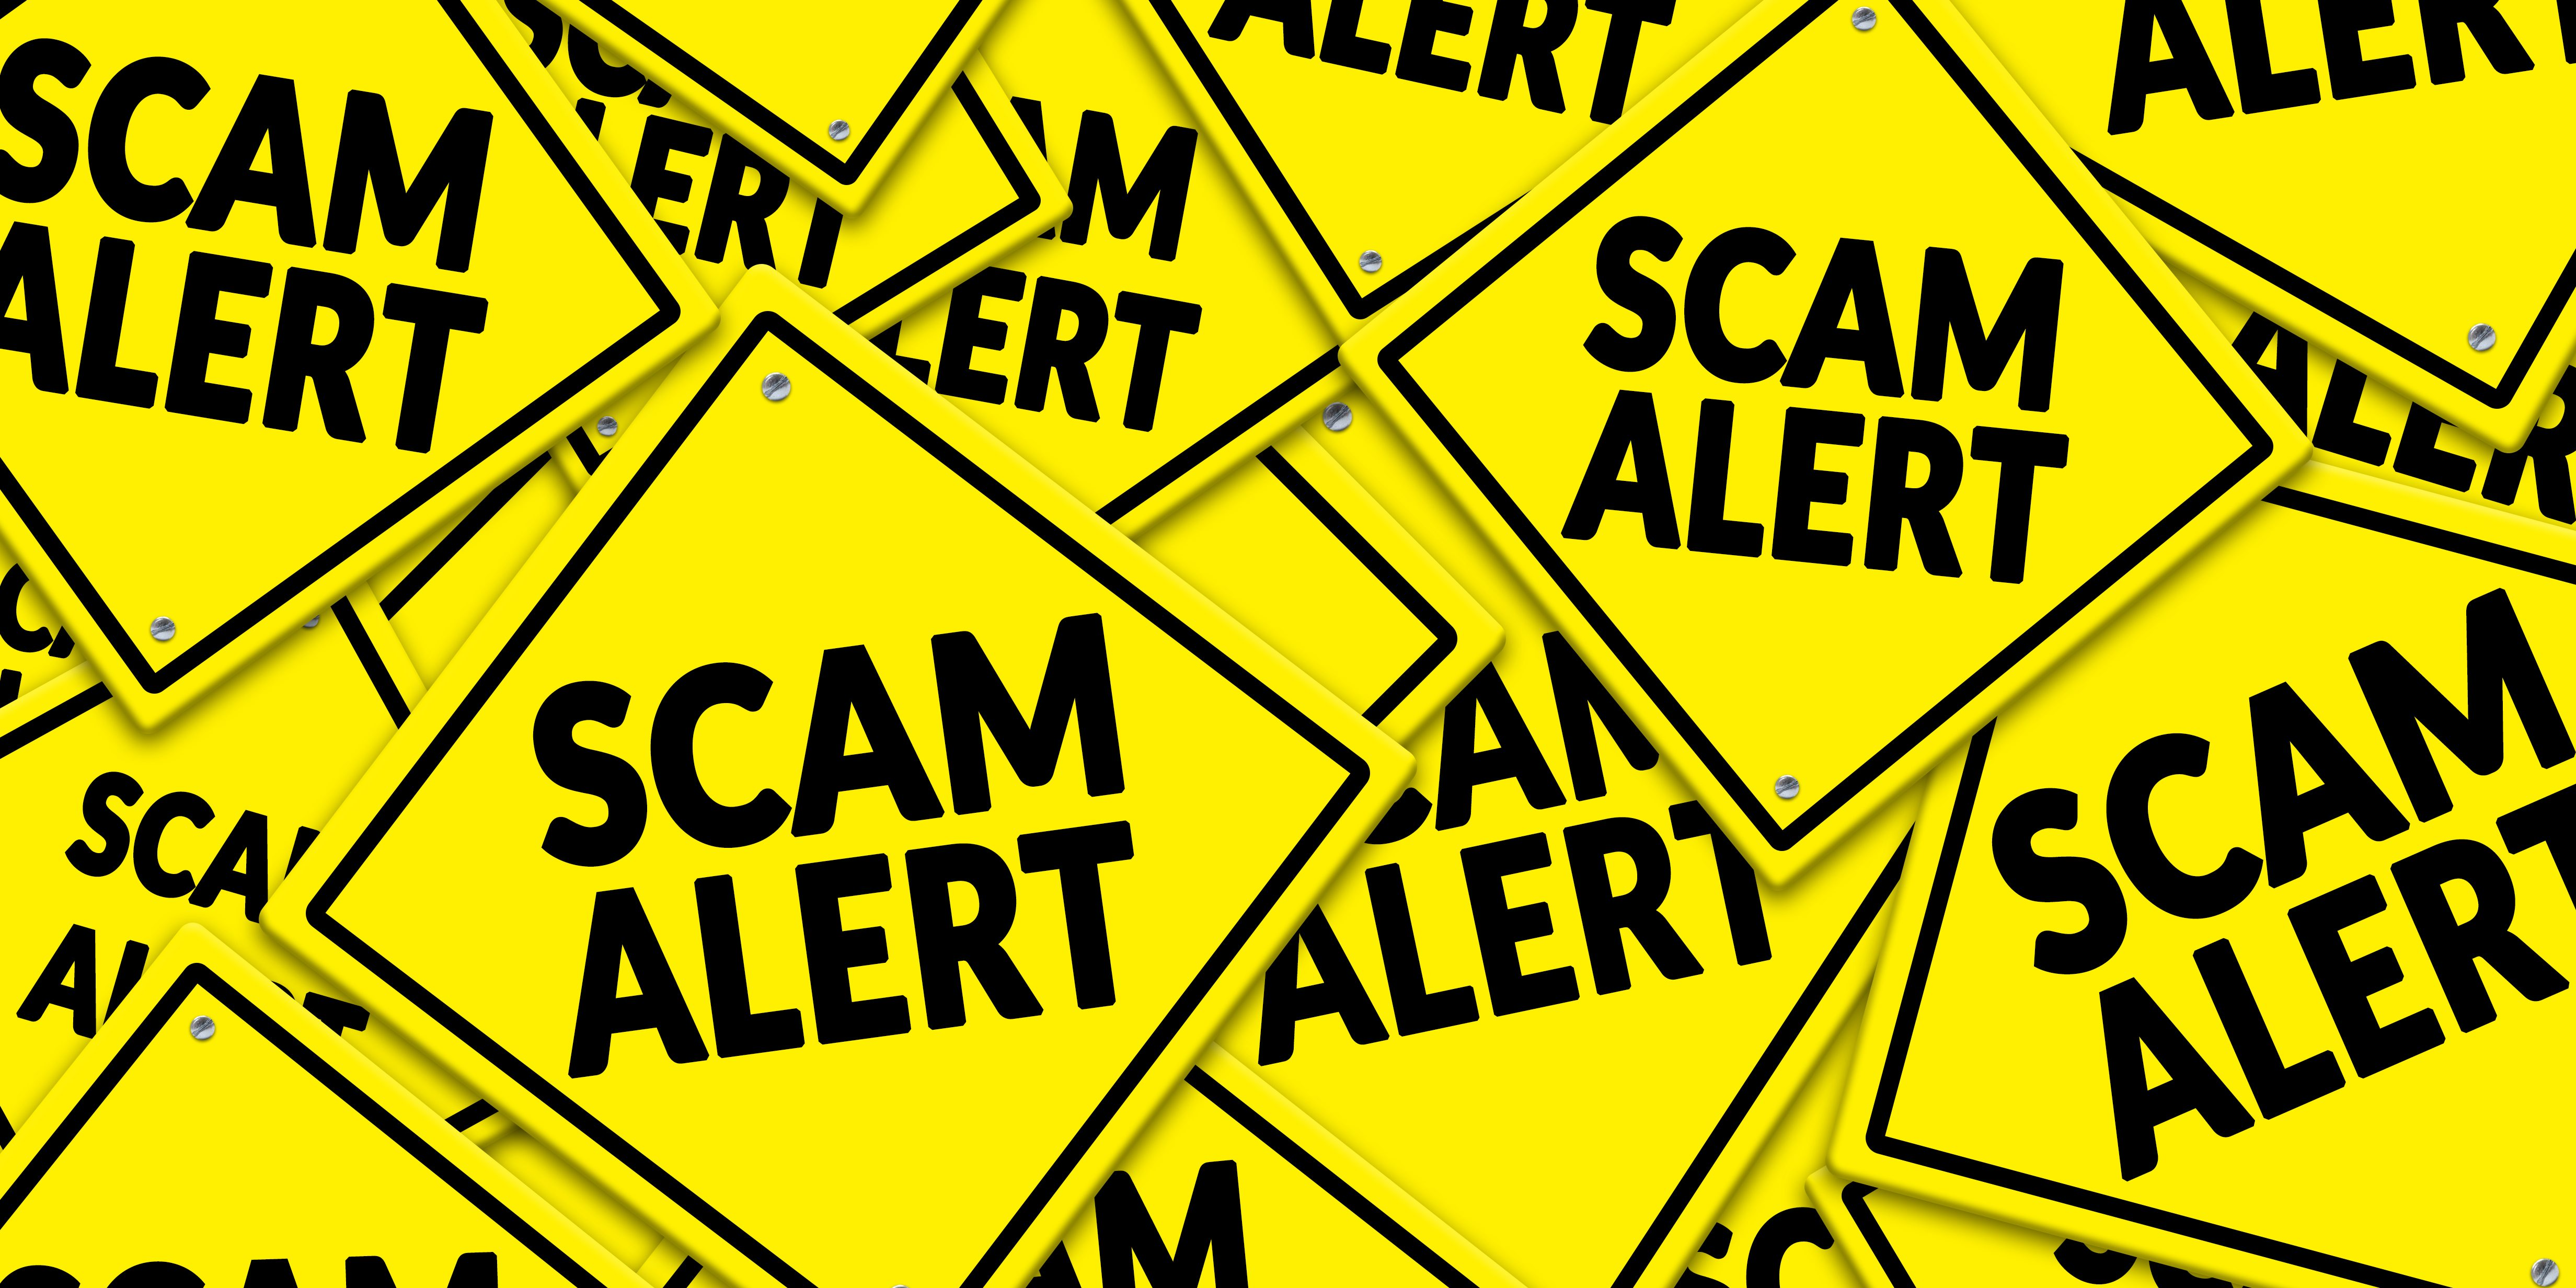 Top 10 Scams that Target the Elderly - Asset Planning